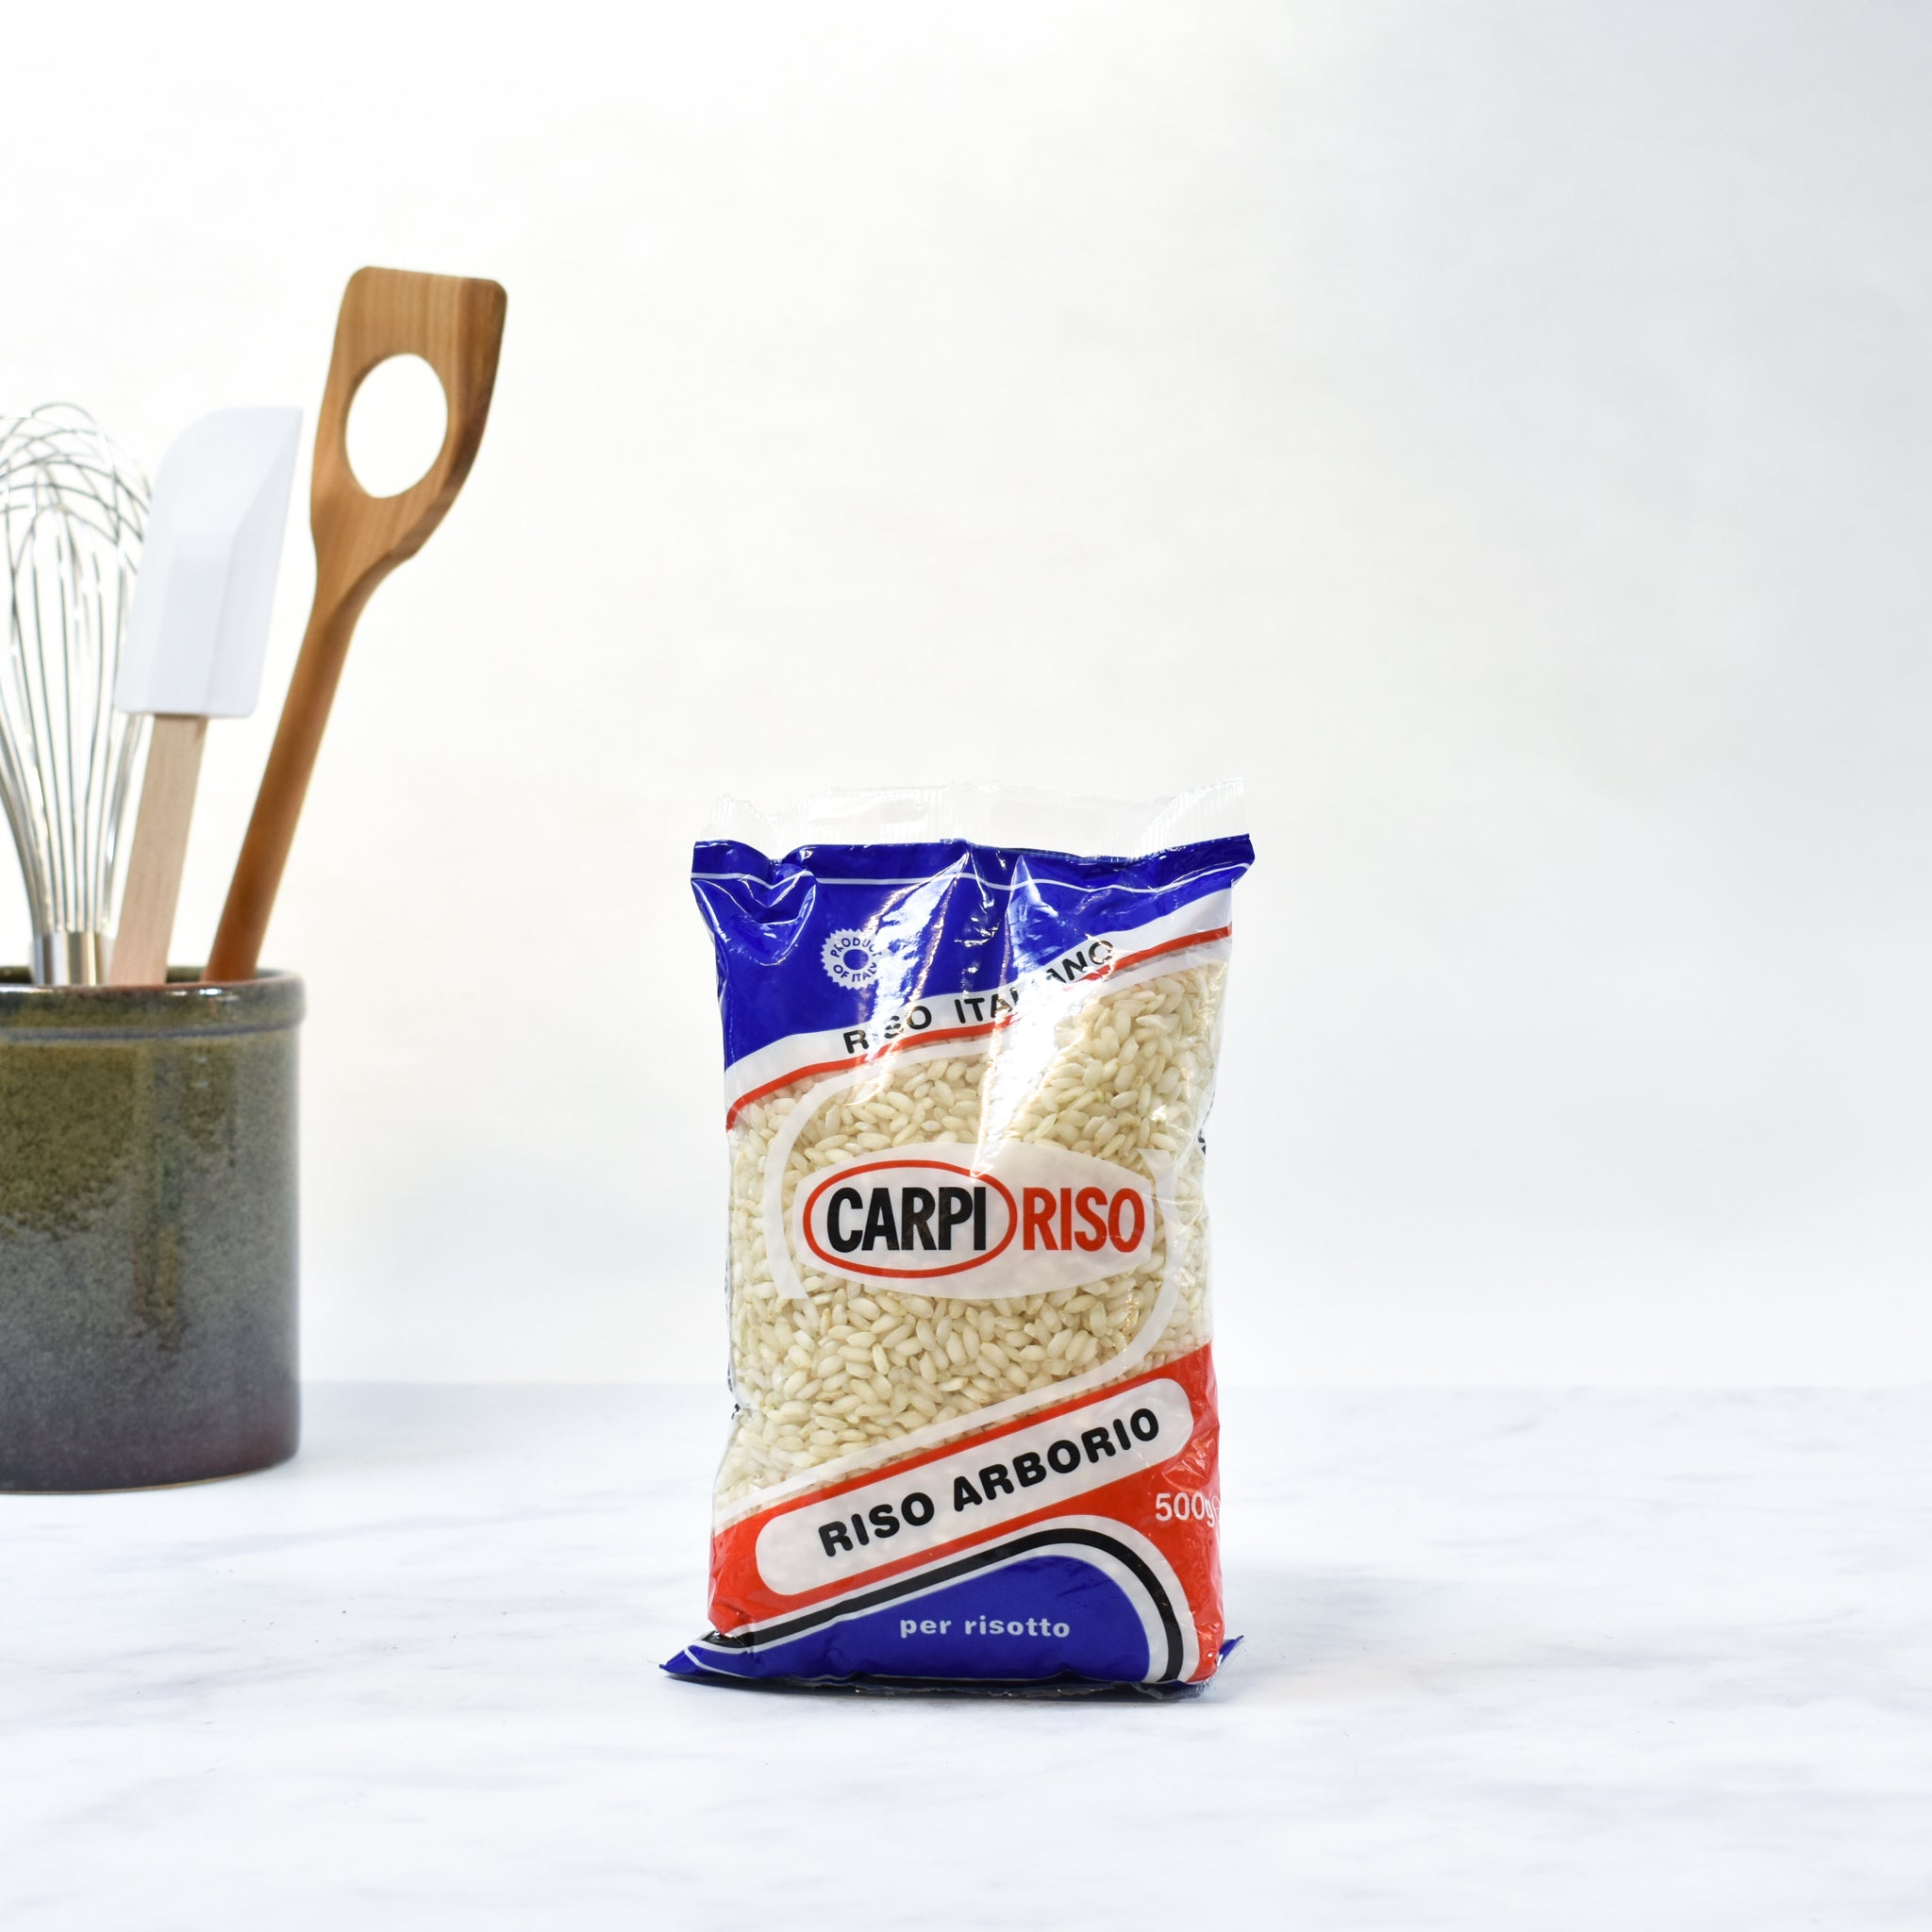 Carpi Riso Arborio Risotto Rice 500g Ingredients Pasta Rice & Noodles Rice Italian Food lifestyle packaging shot